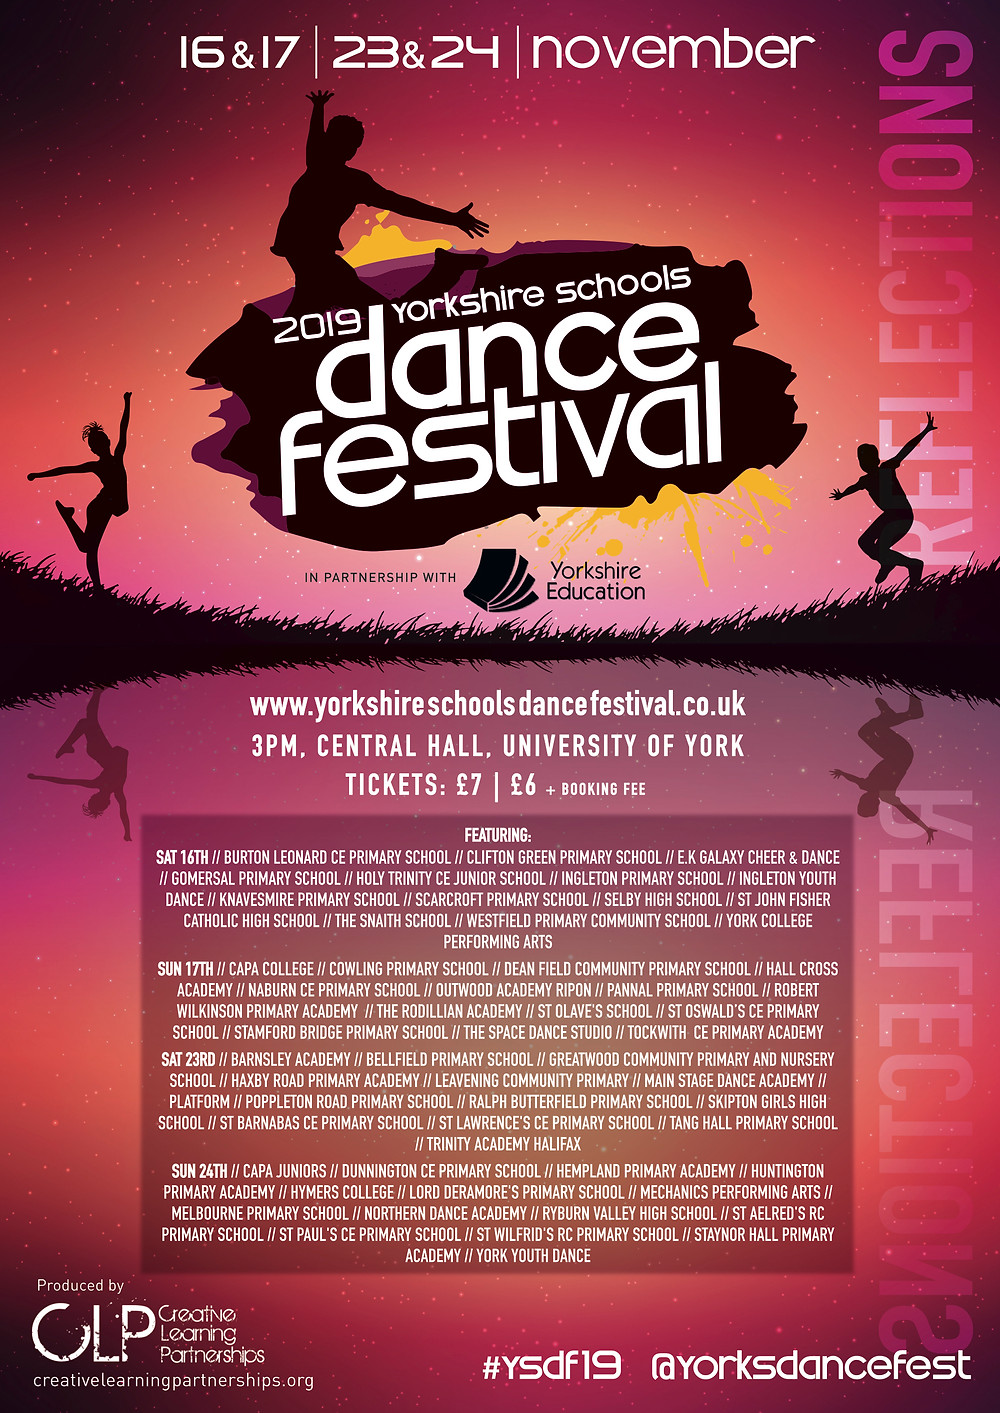 2019 Yorkshire Schools Dance Festival poster